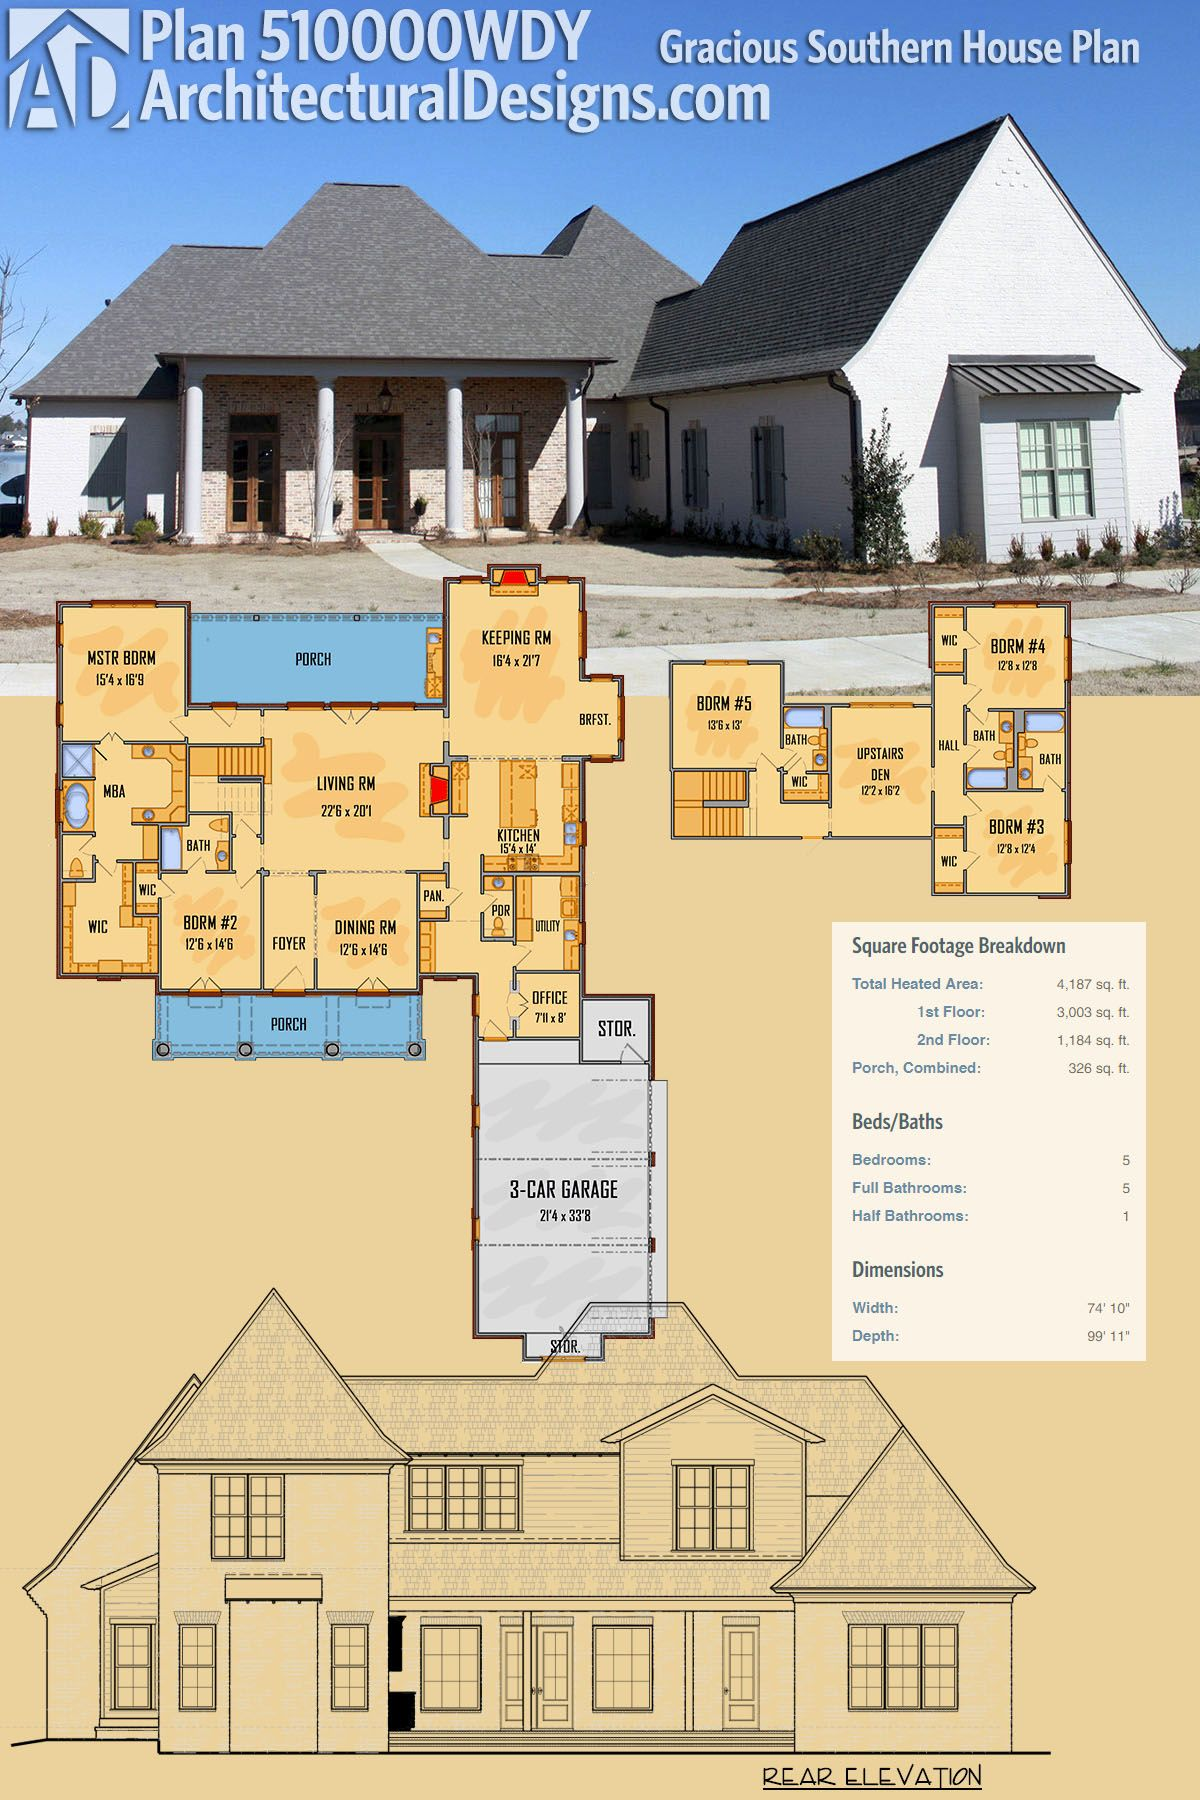 Architectural Designs House Plan 510000WDY is a